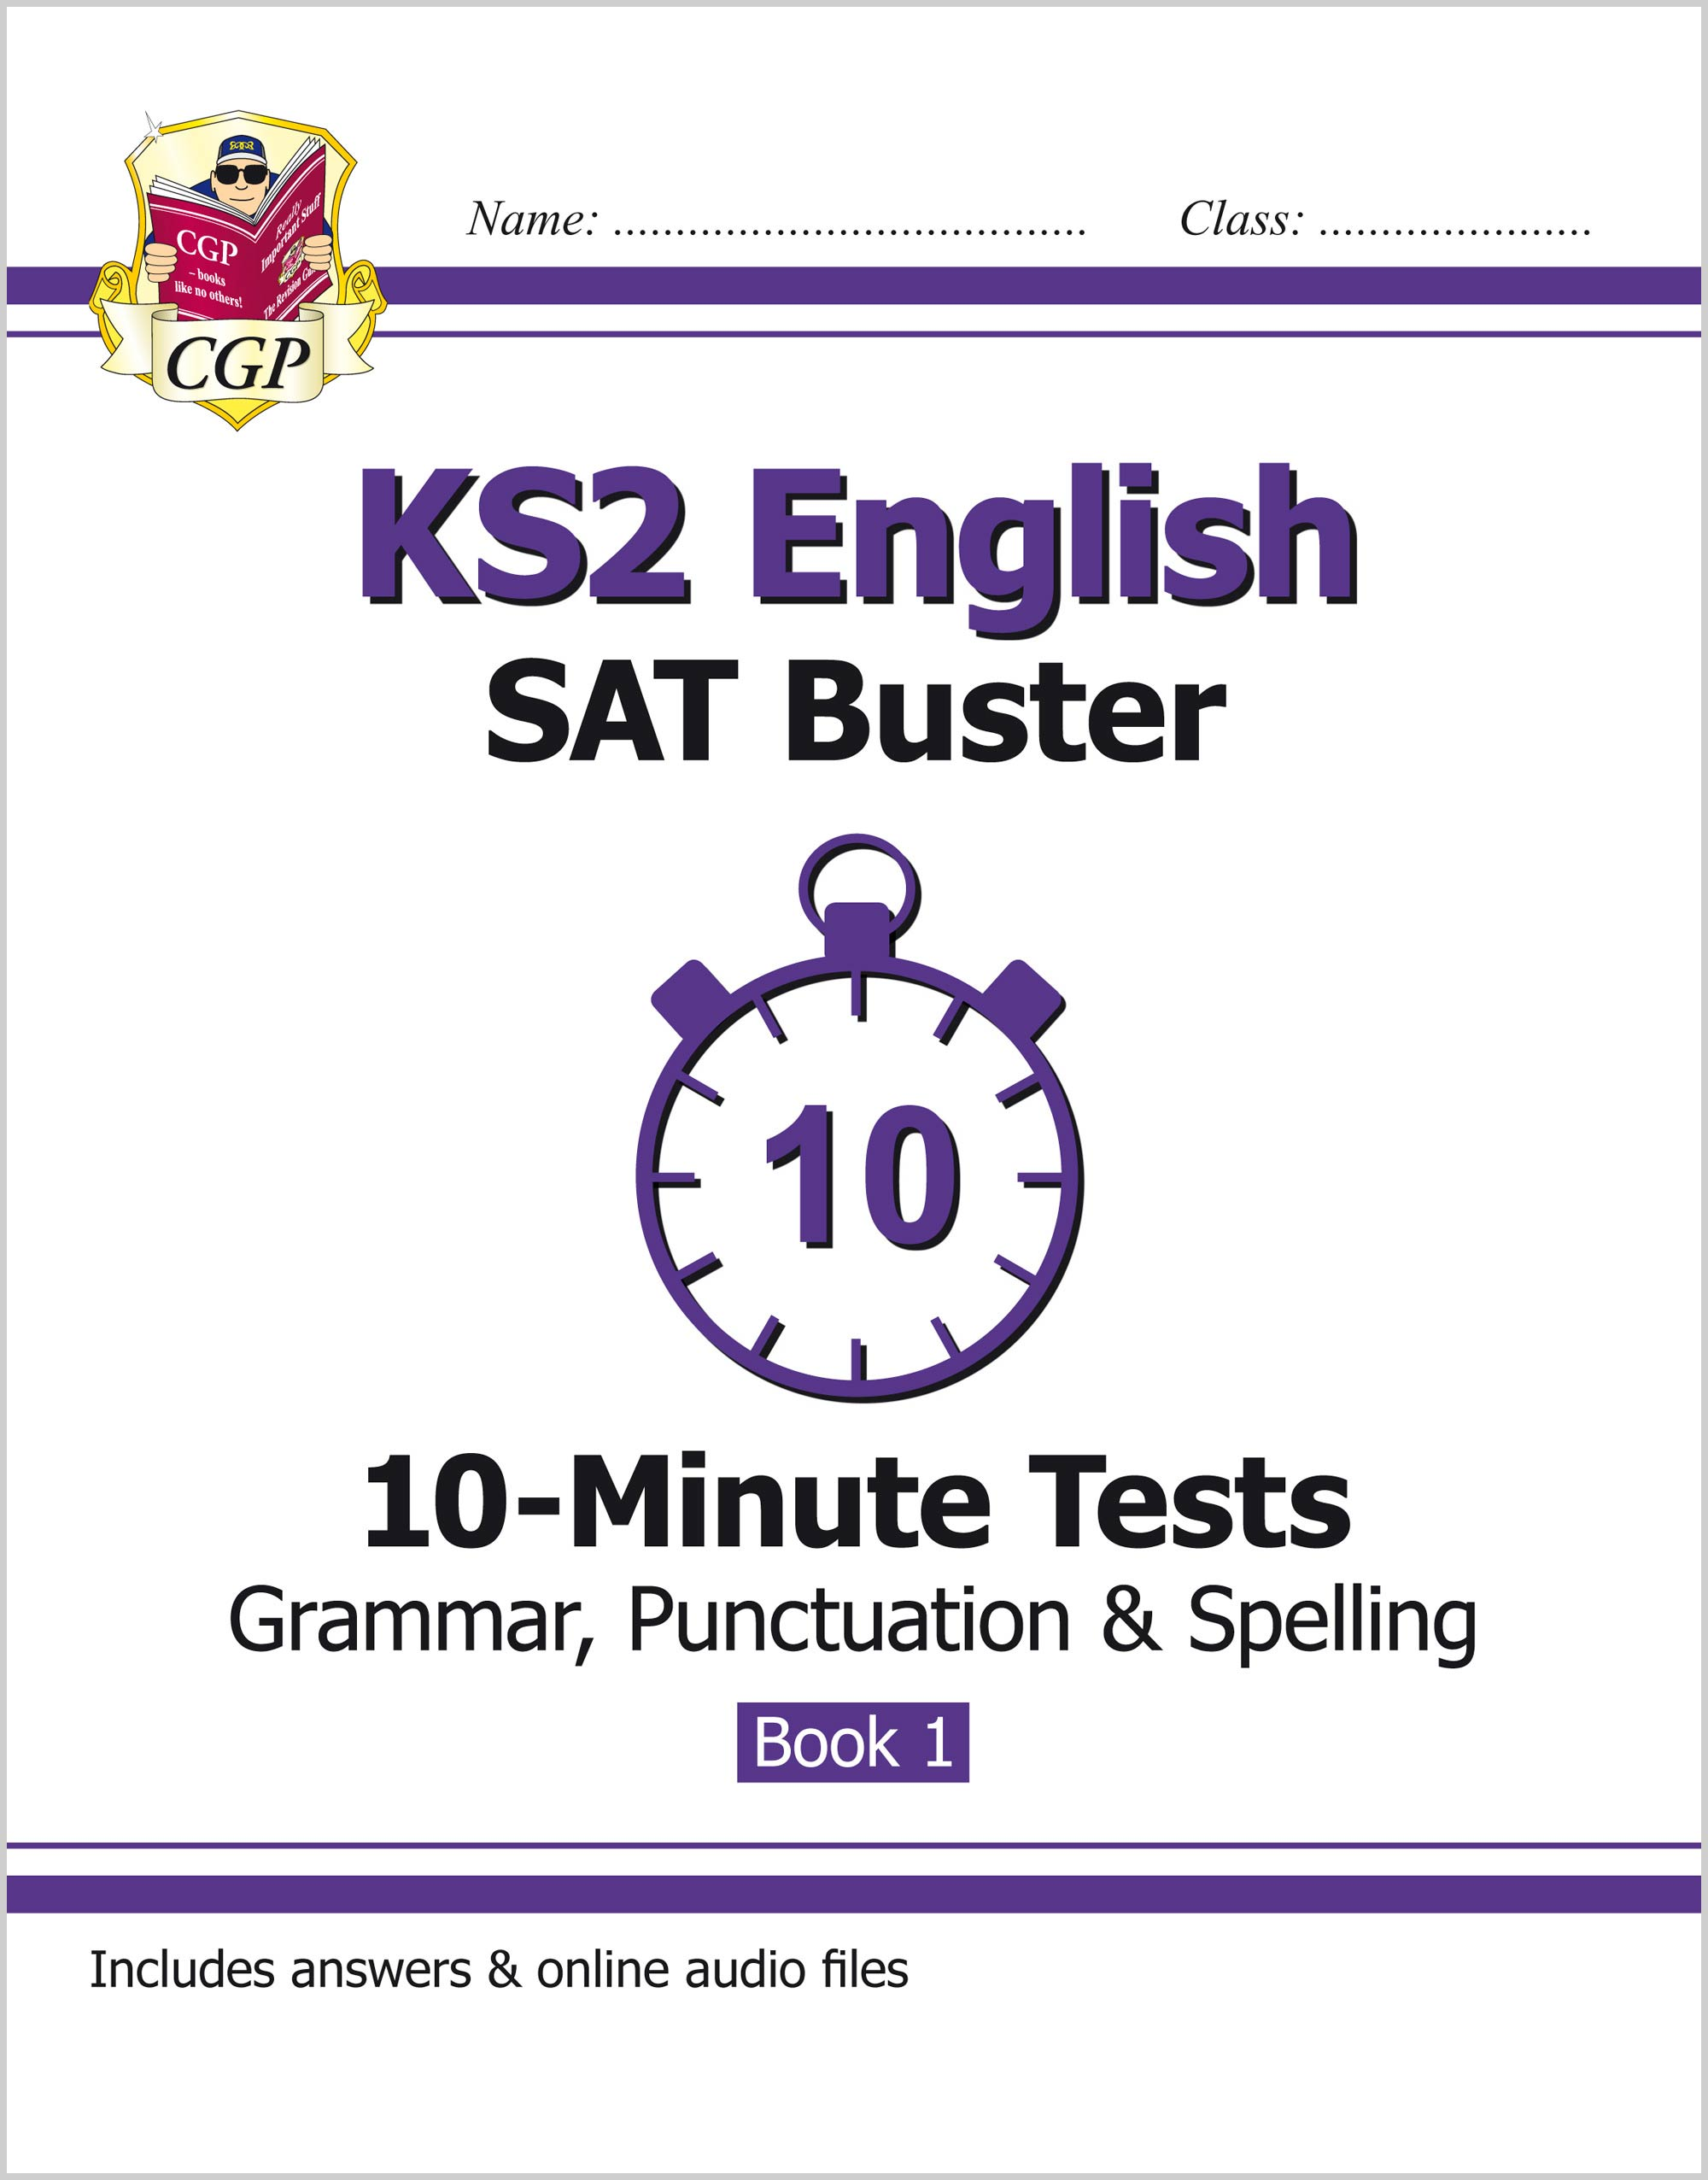 EXPG22 - KS2 English SAT Buster 10-Minute Tests: Grammar, Punctuation & Spelling Book 1 (for the 202